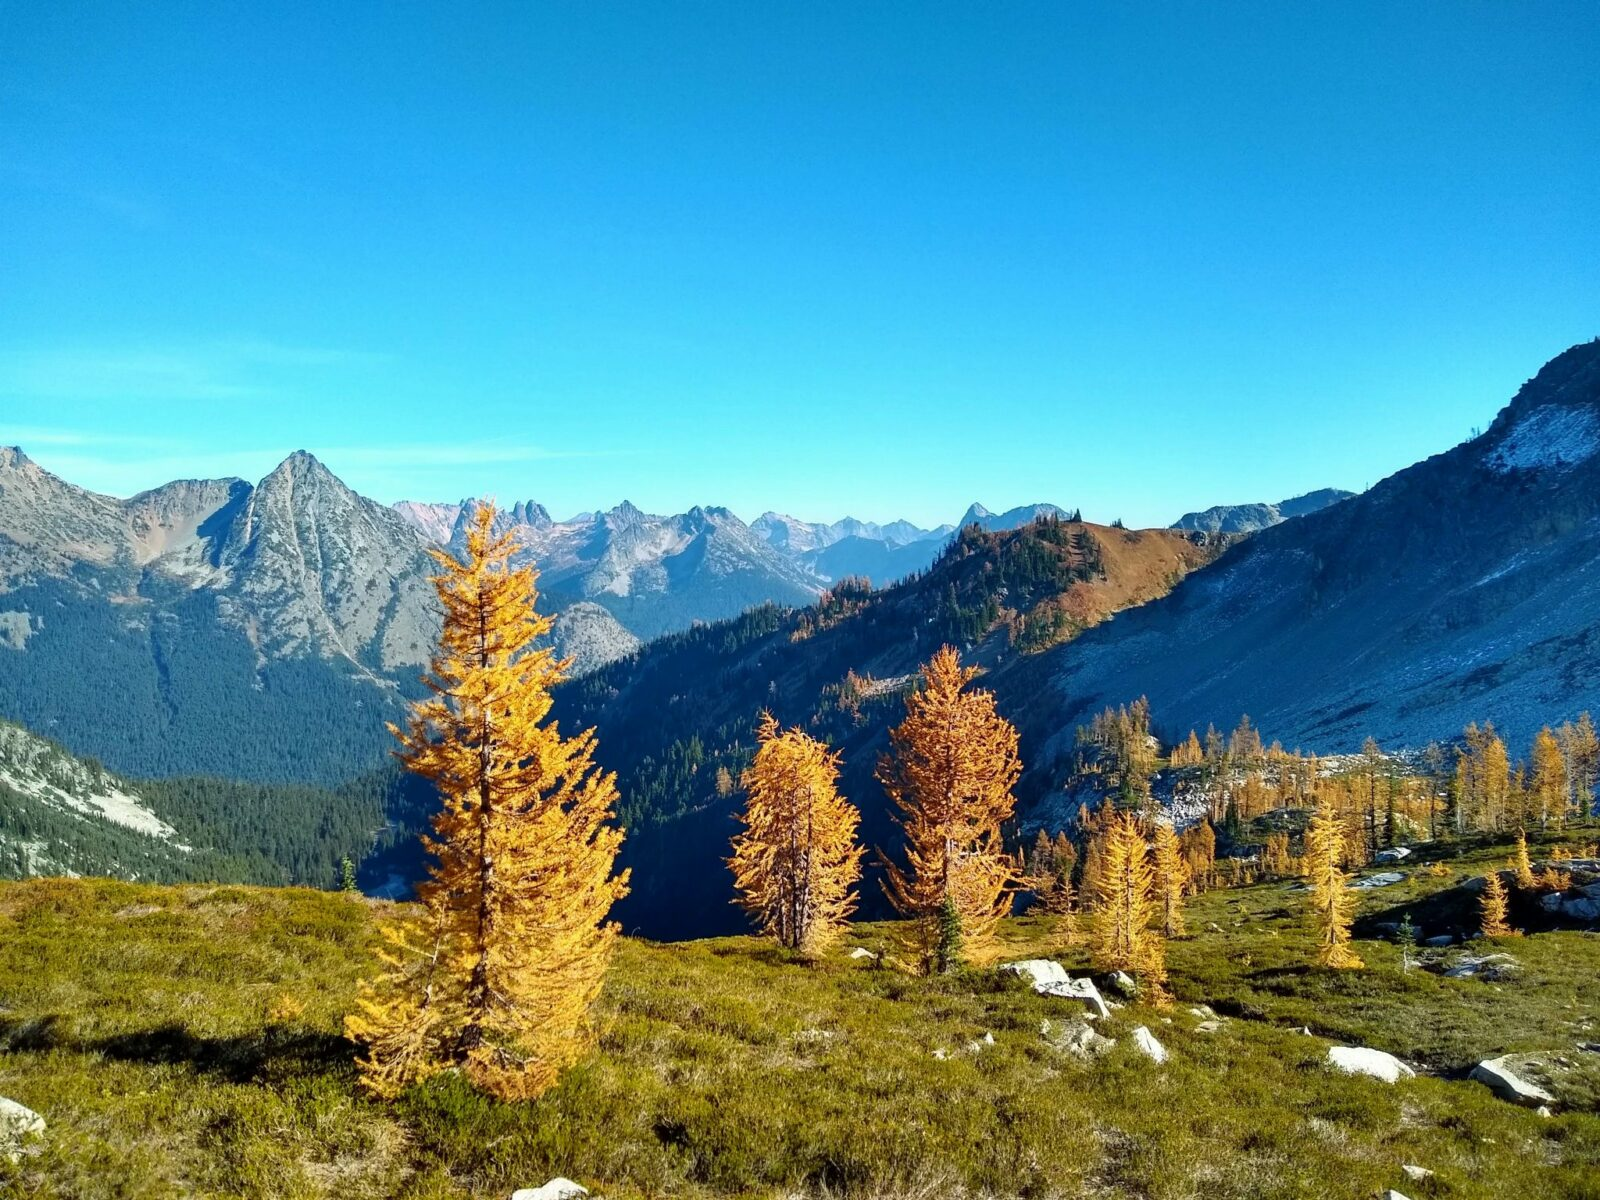 A few golden larch trees on a high open meadow ridge with a view of many distant mountains in the background on the Maple Pass Trail near the boundary of North Cascades National Park